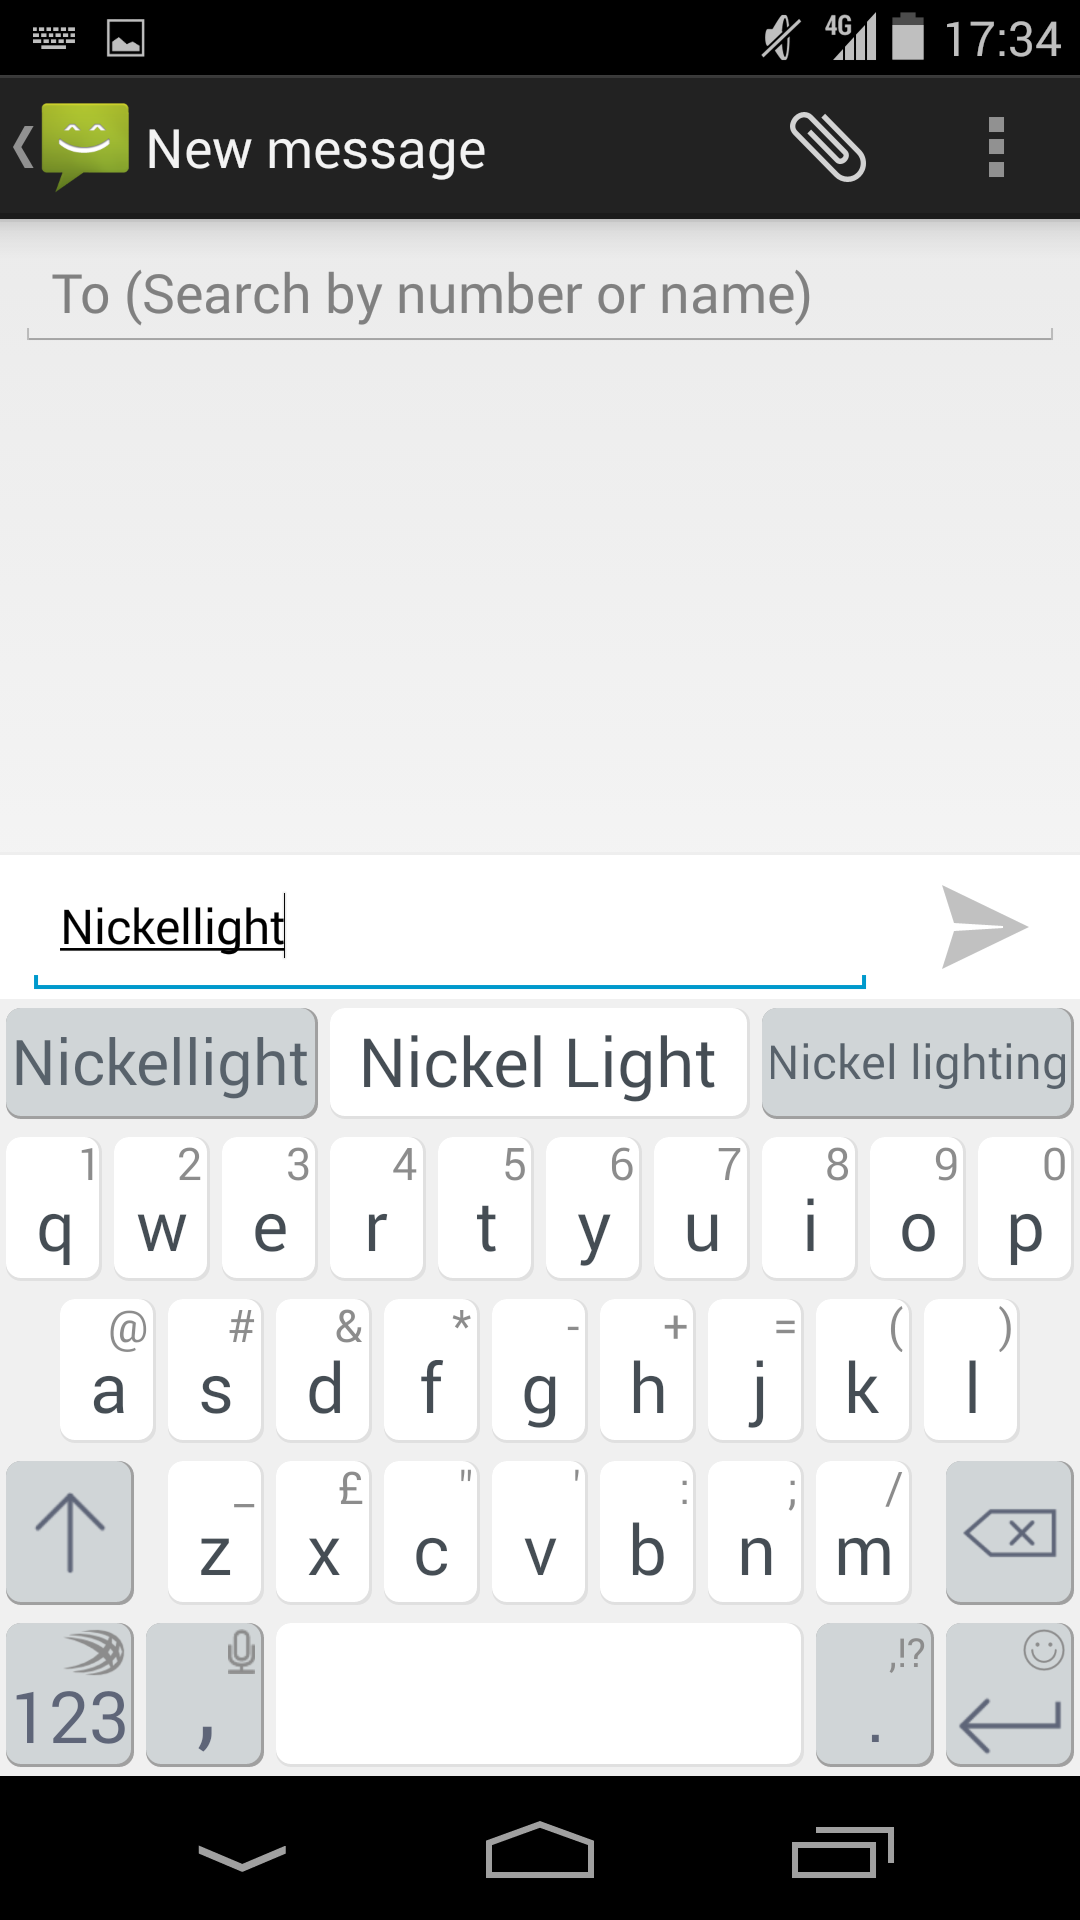 Nickel Light an alternative to Nickel, with a soft gray